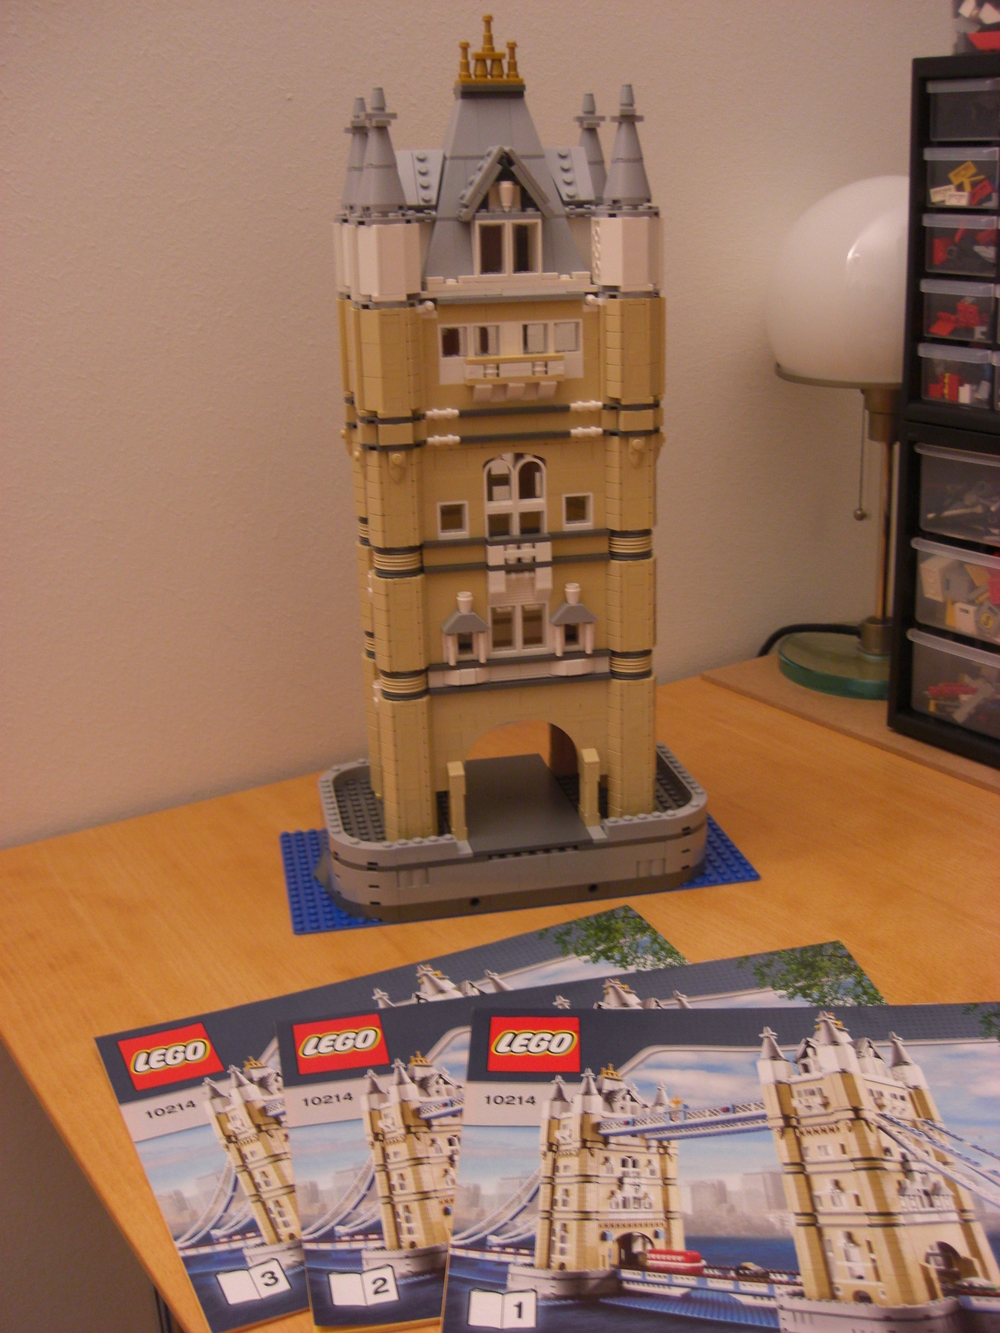 One tower from Tower bridge set (10214)